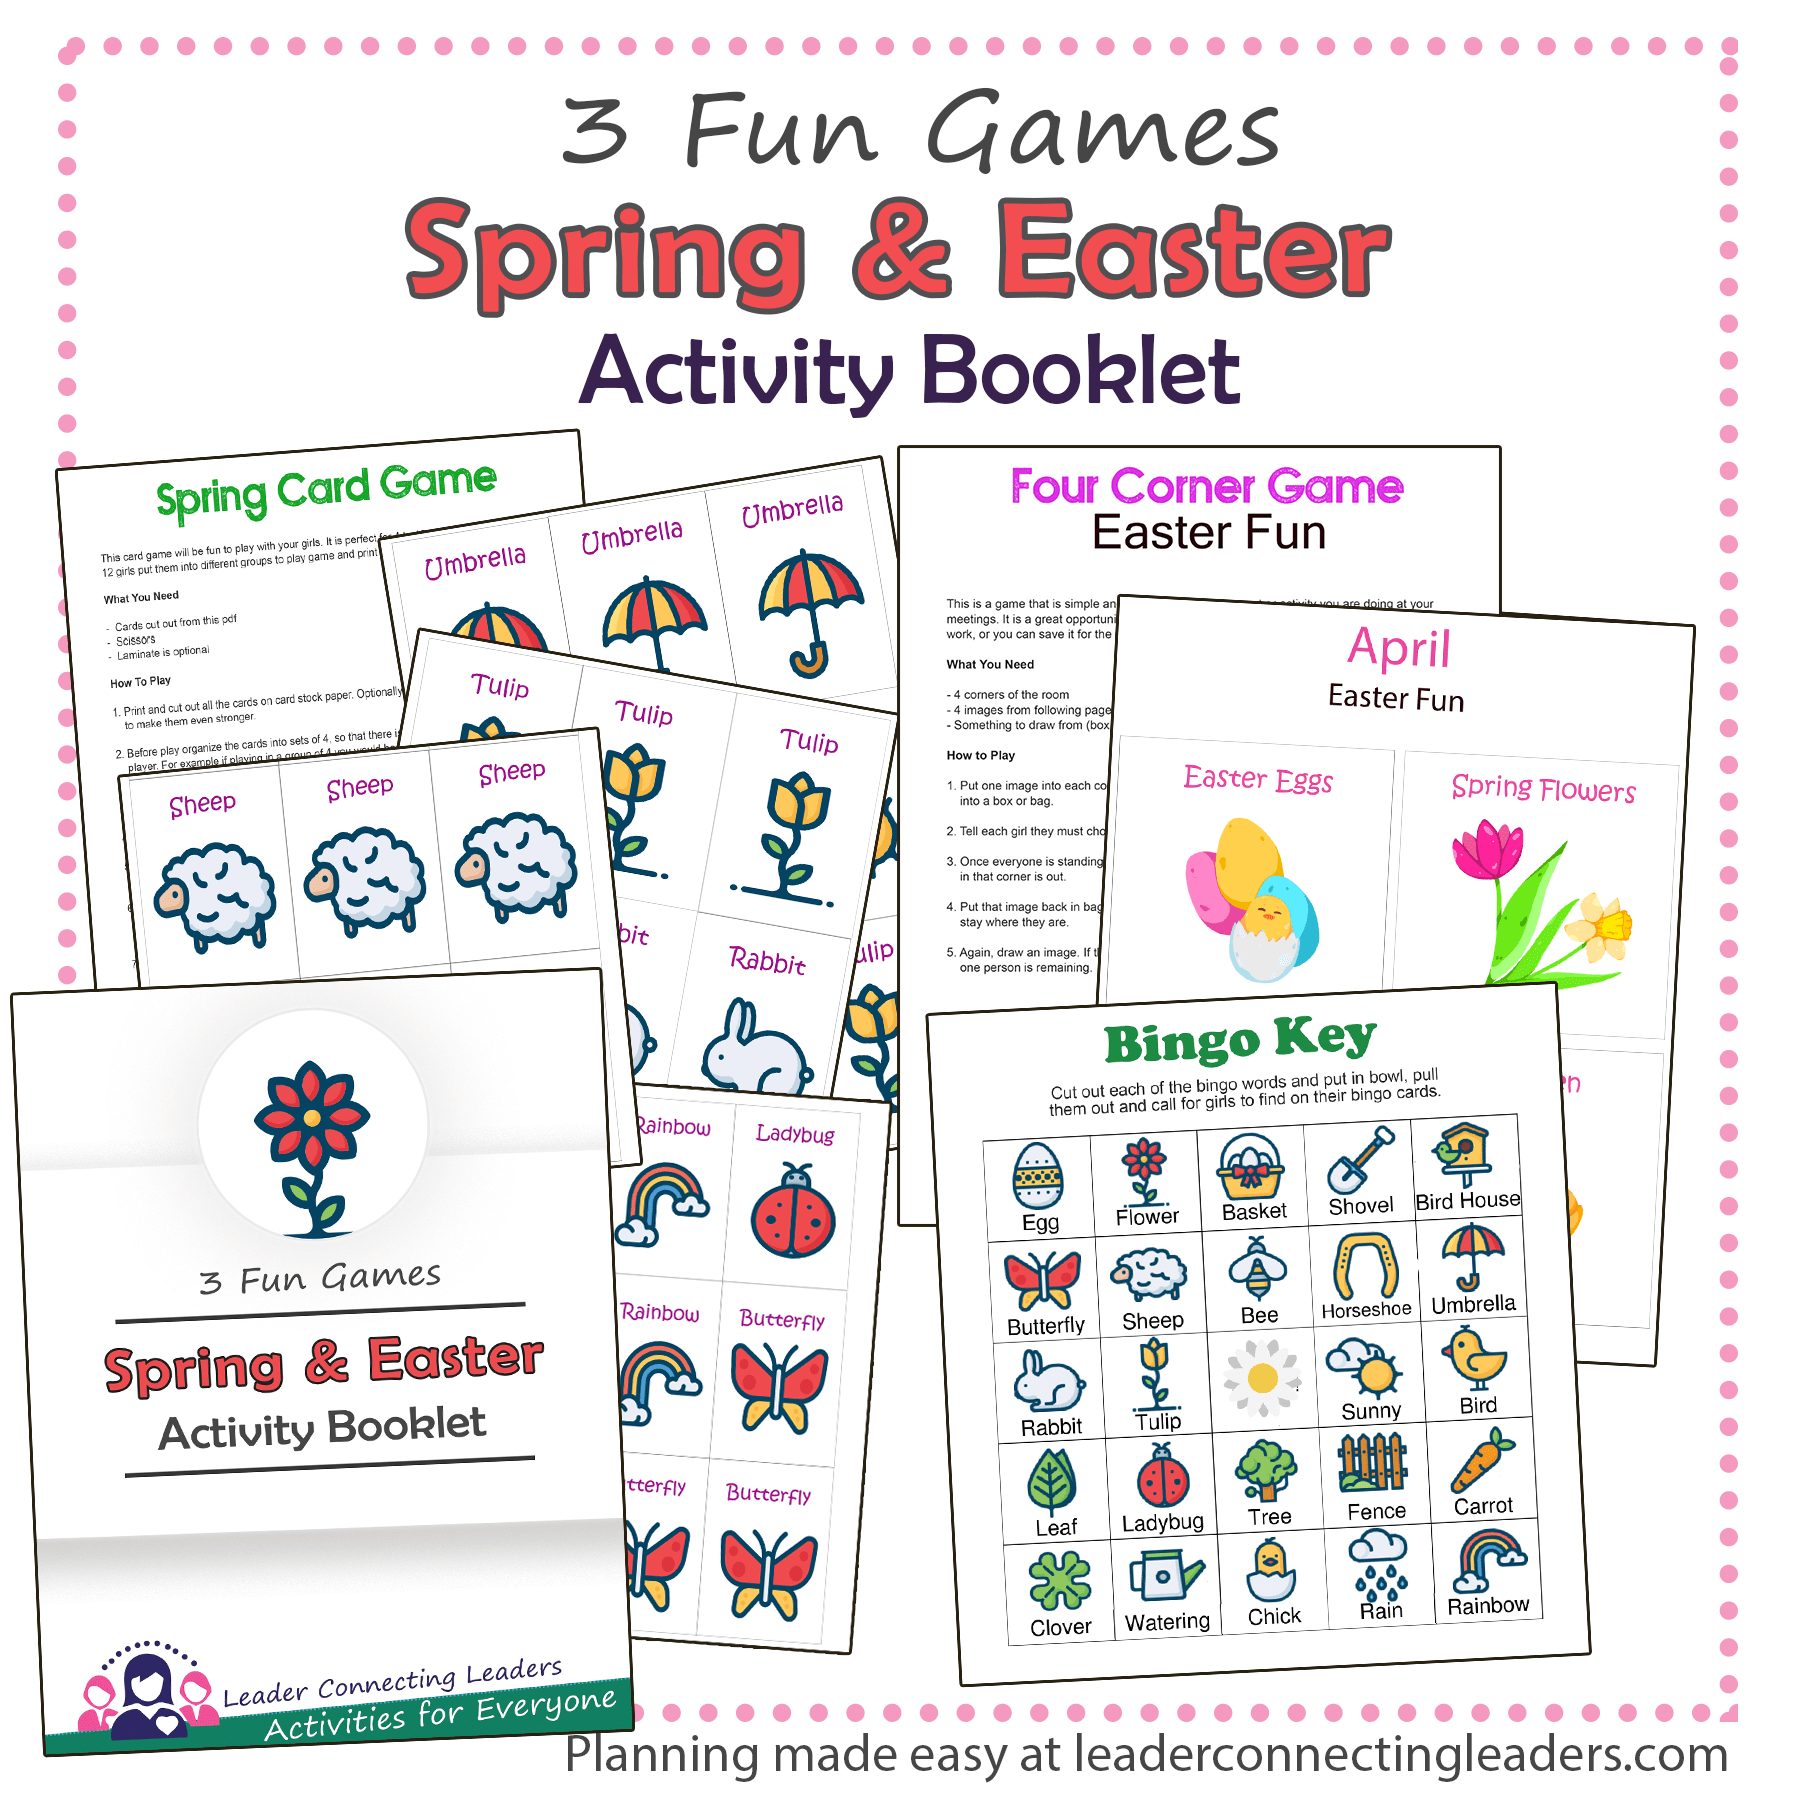 Spring and Easter Activity Booklet